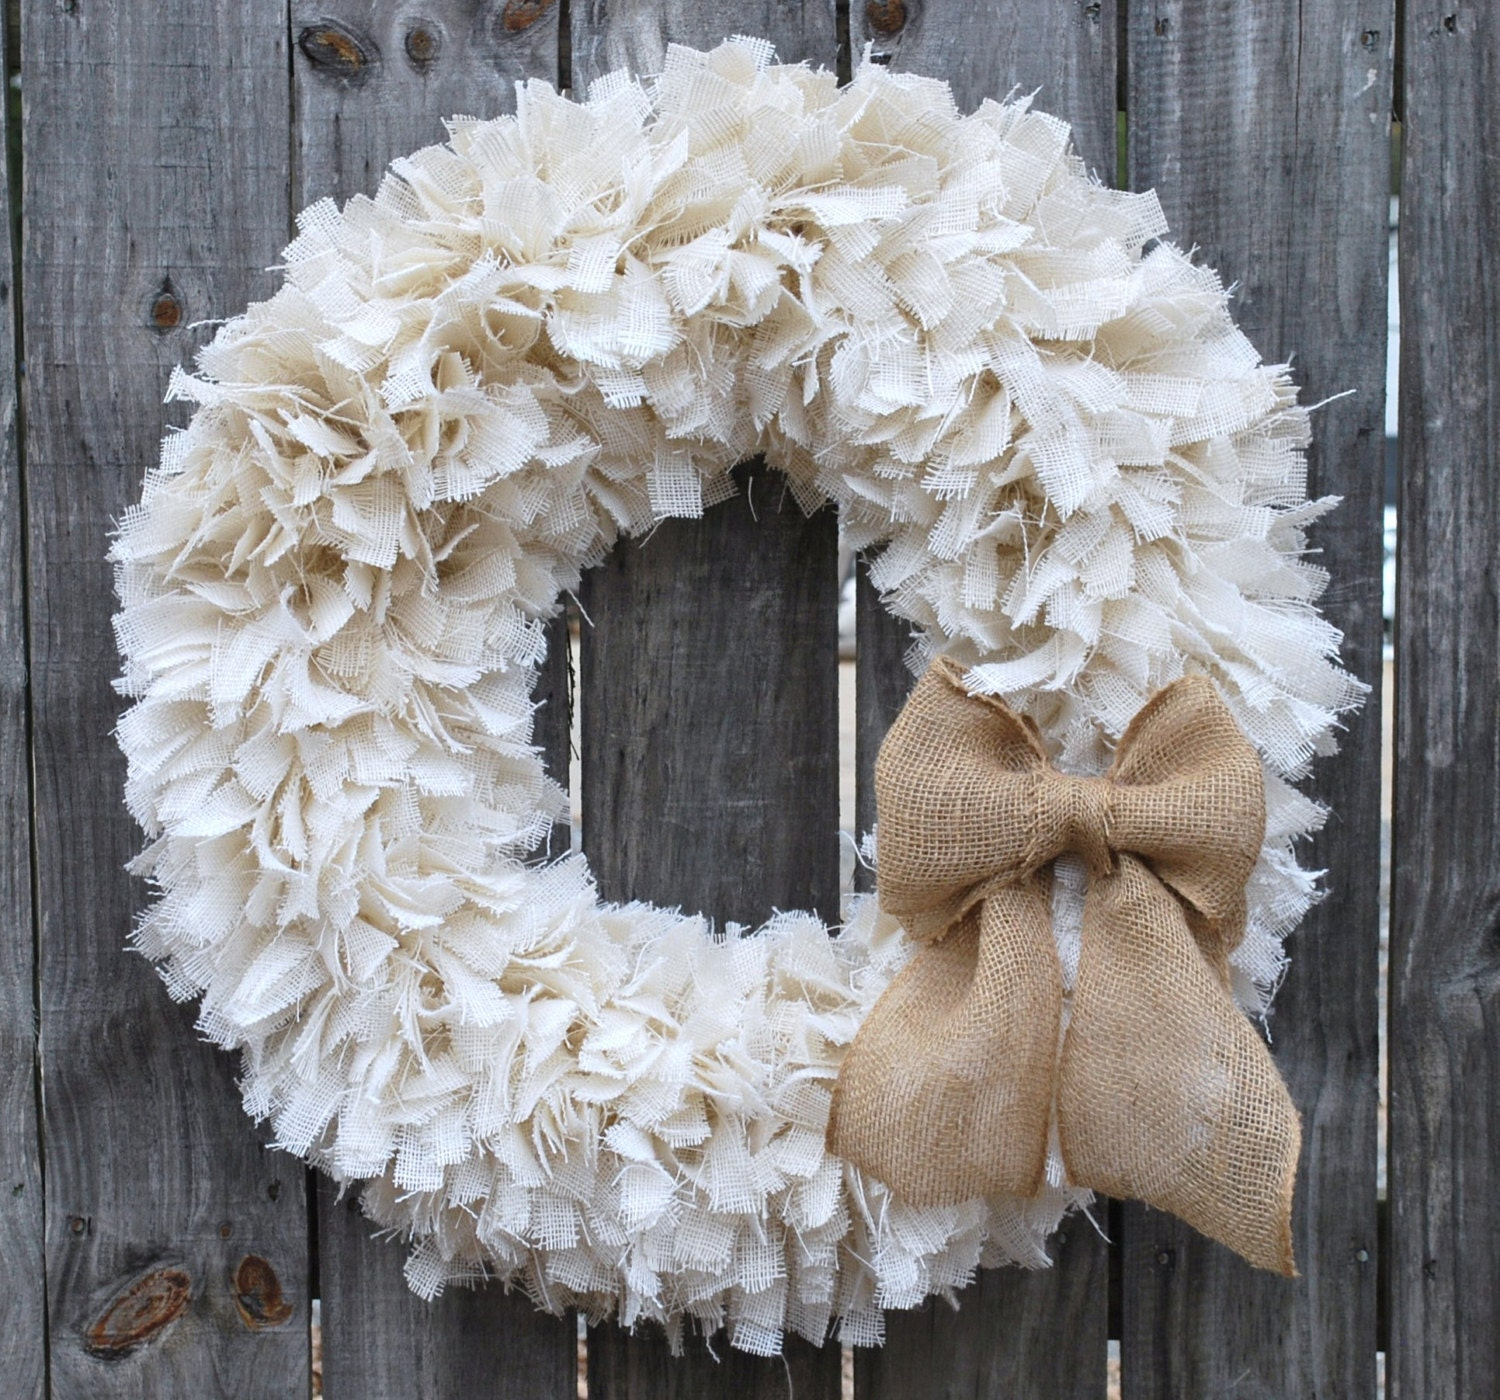 28 Burlap Rag Wreath Winter Wreath White Wreath